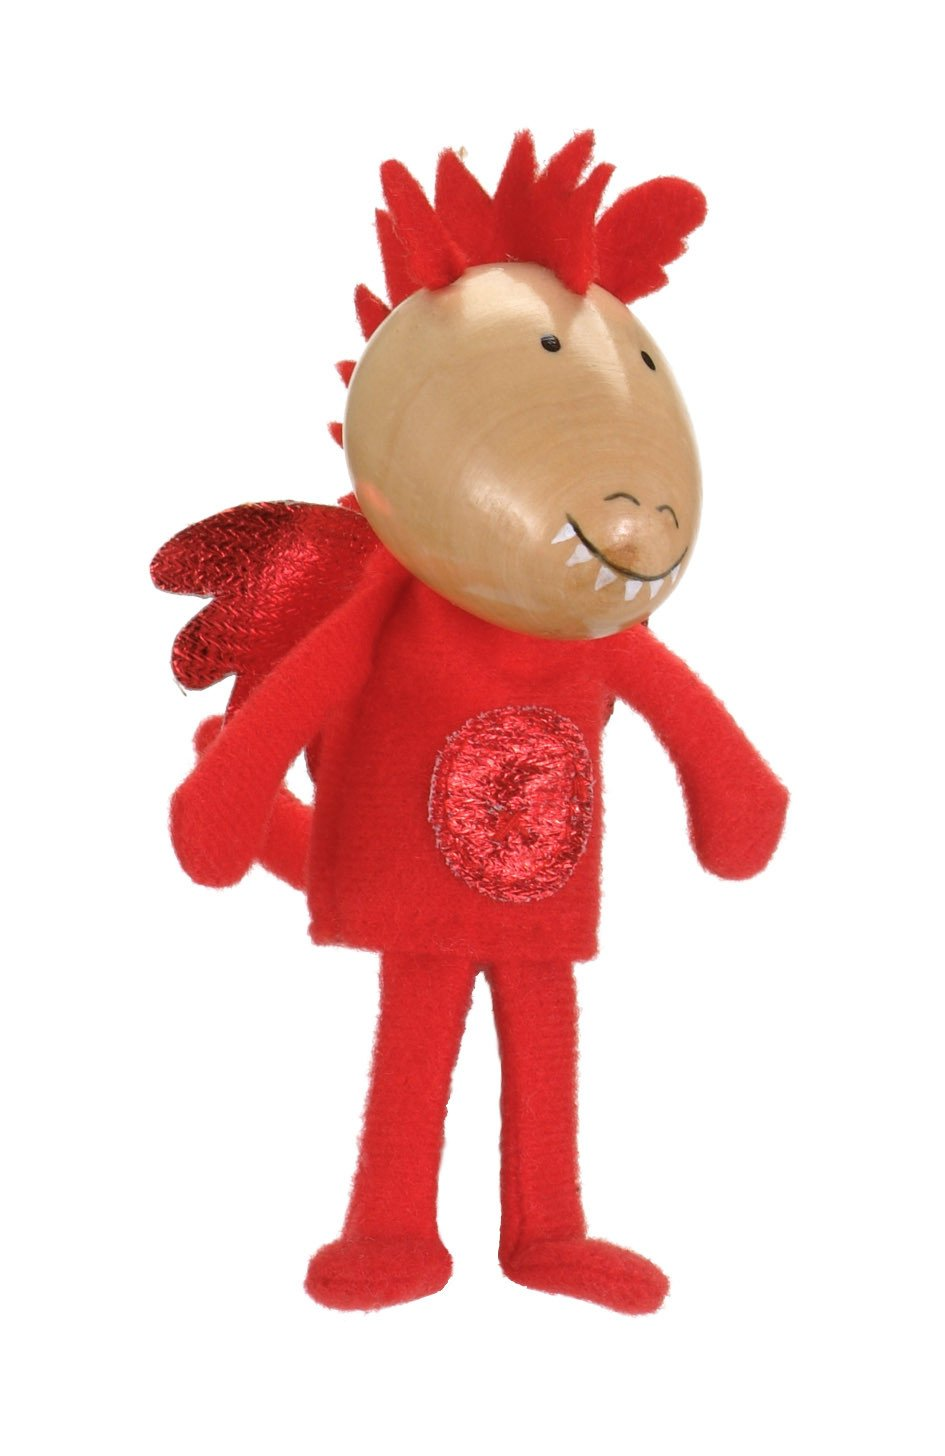 Boutique Finger Puppets Fiesta Crafts Toys Red Dragon at Little Earth Nest Eco Shop